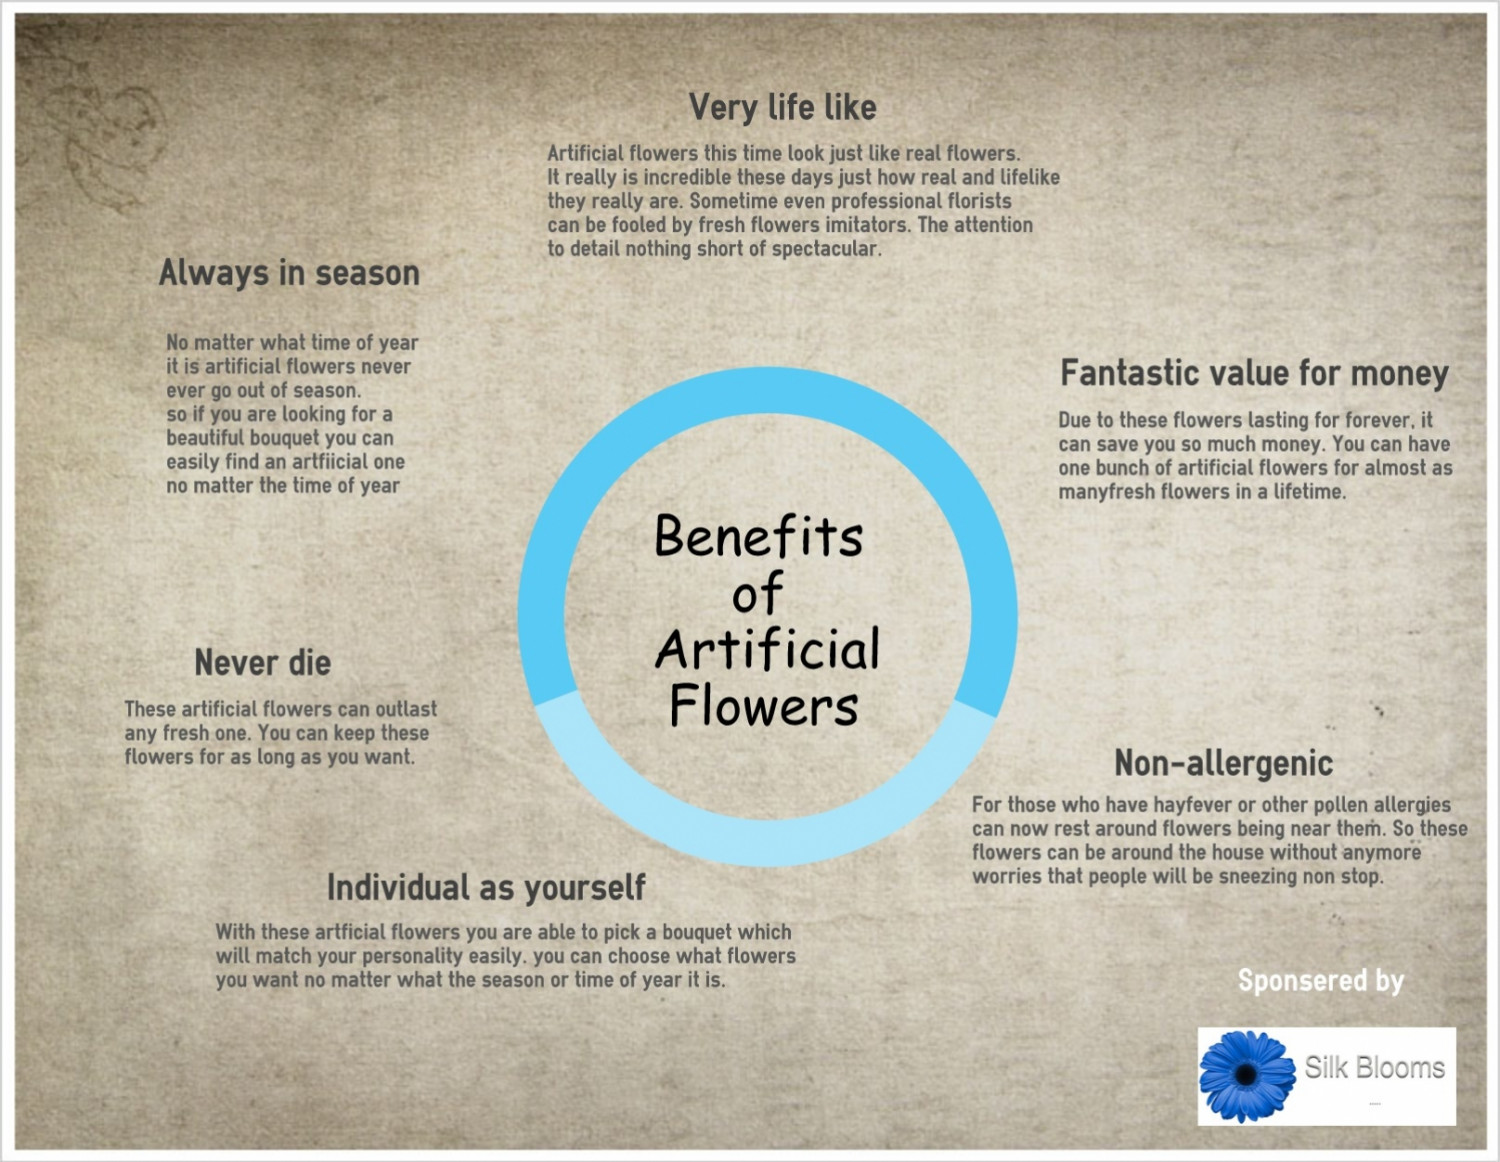 Benefits of artificial flowers Infographic